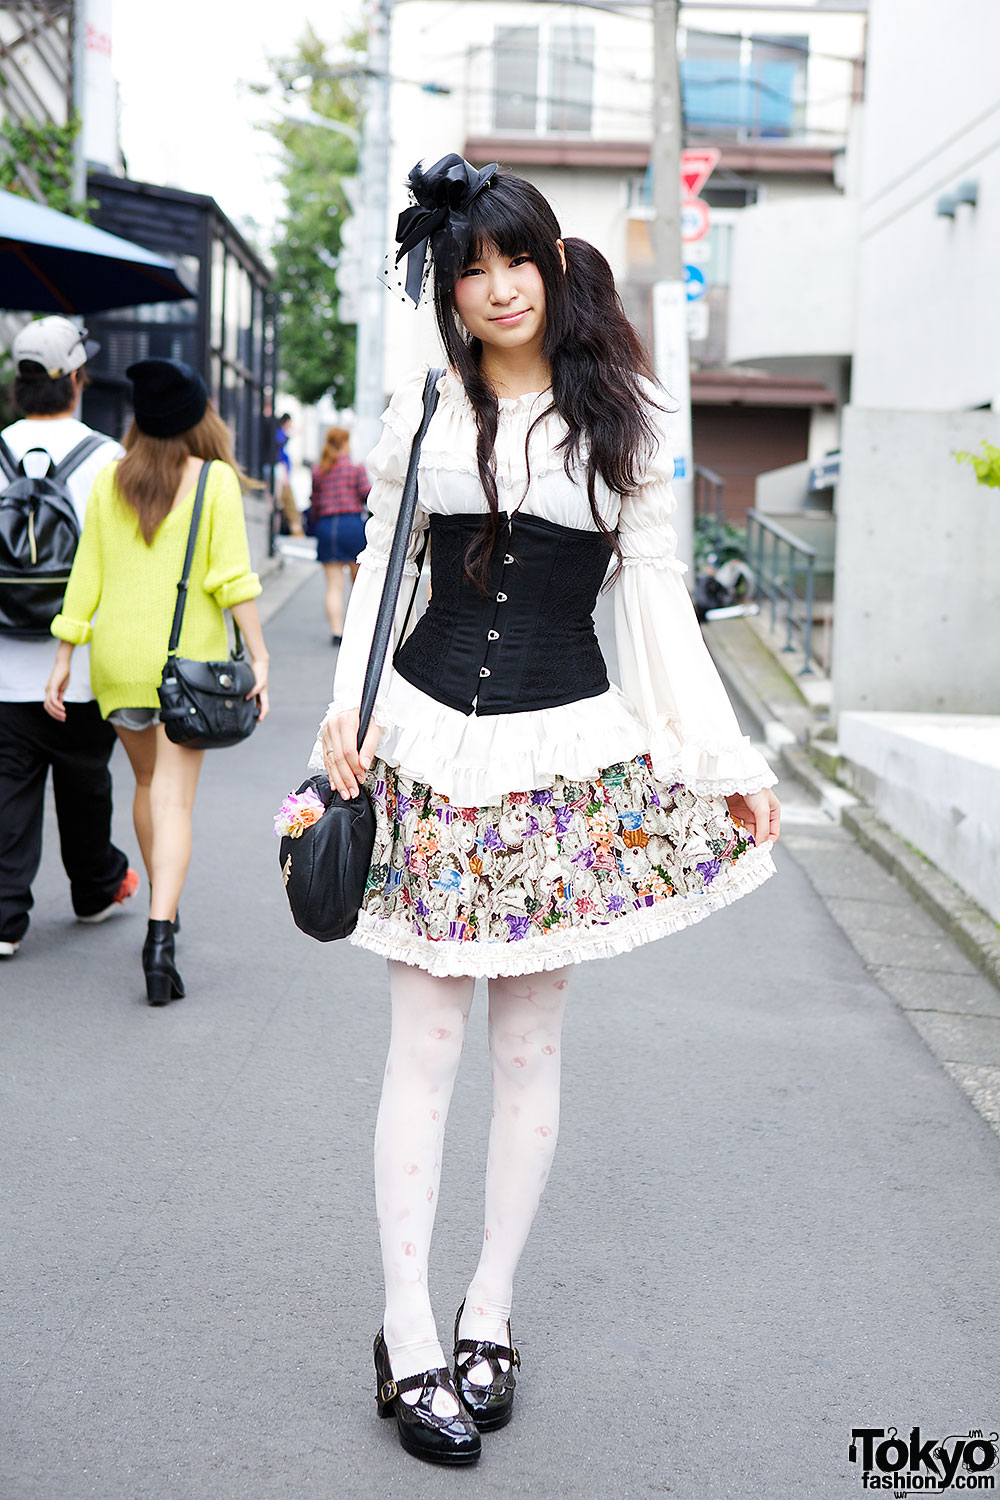 Magnificent Tokyo teen girl n pics what